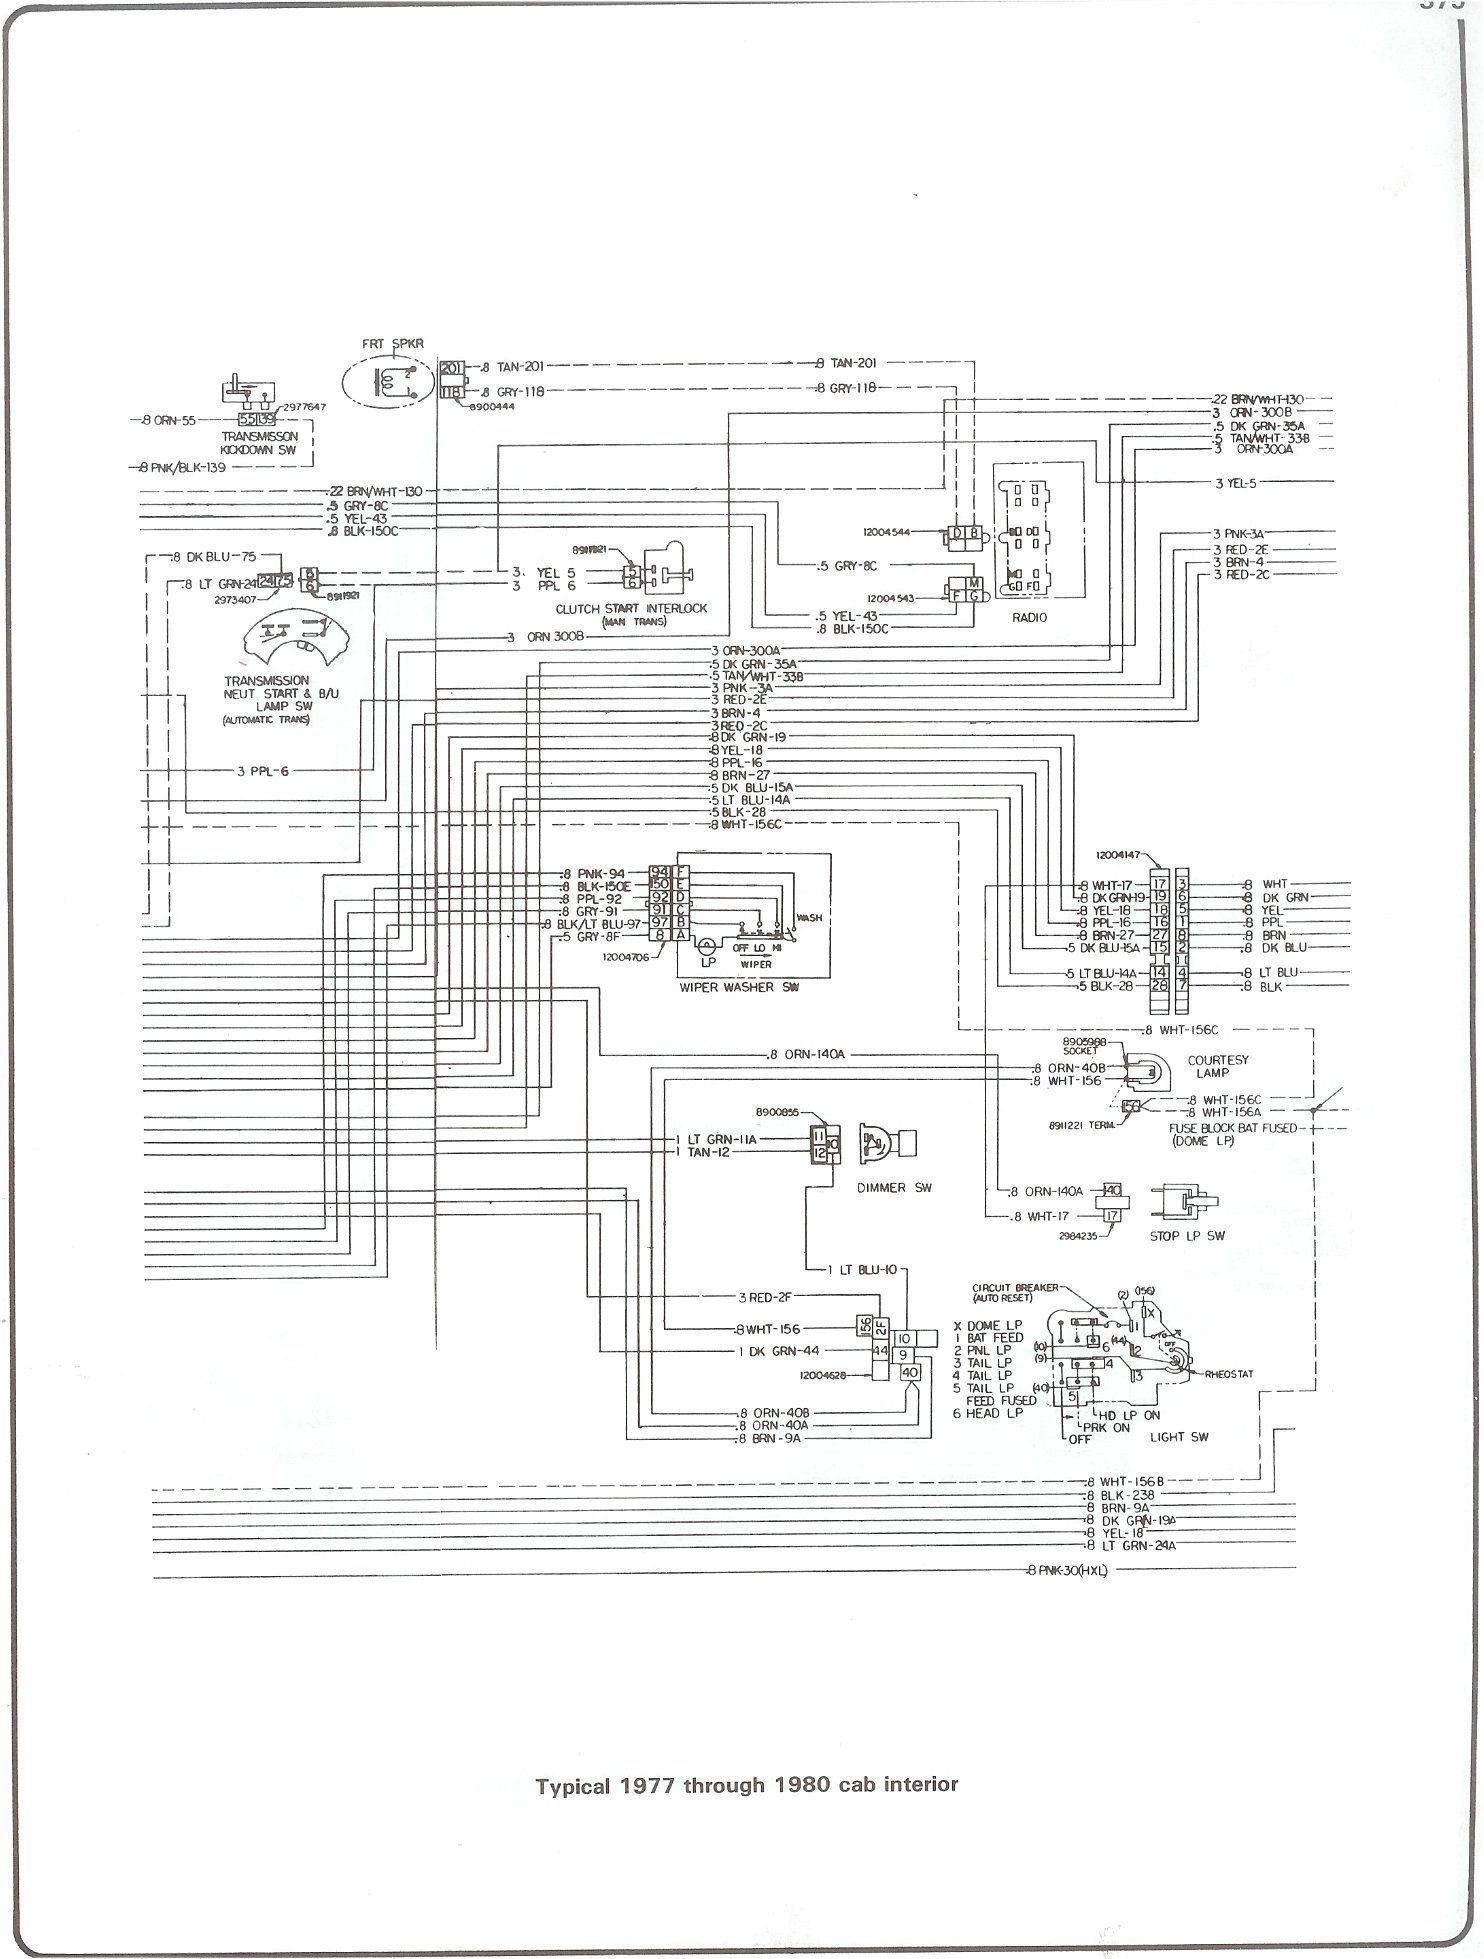 complete 73 87 wiring diagrams 65 Chevy Truck Wiring Diagram  Chevy Truck Radio Wiring Diagram Chevy Truck Wiring Schematics 1970 Chevy Truck Wiring Diagram